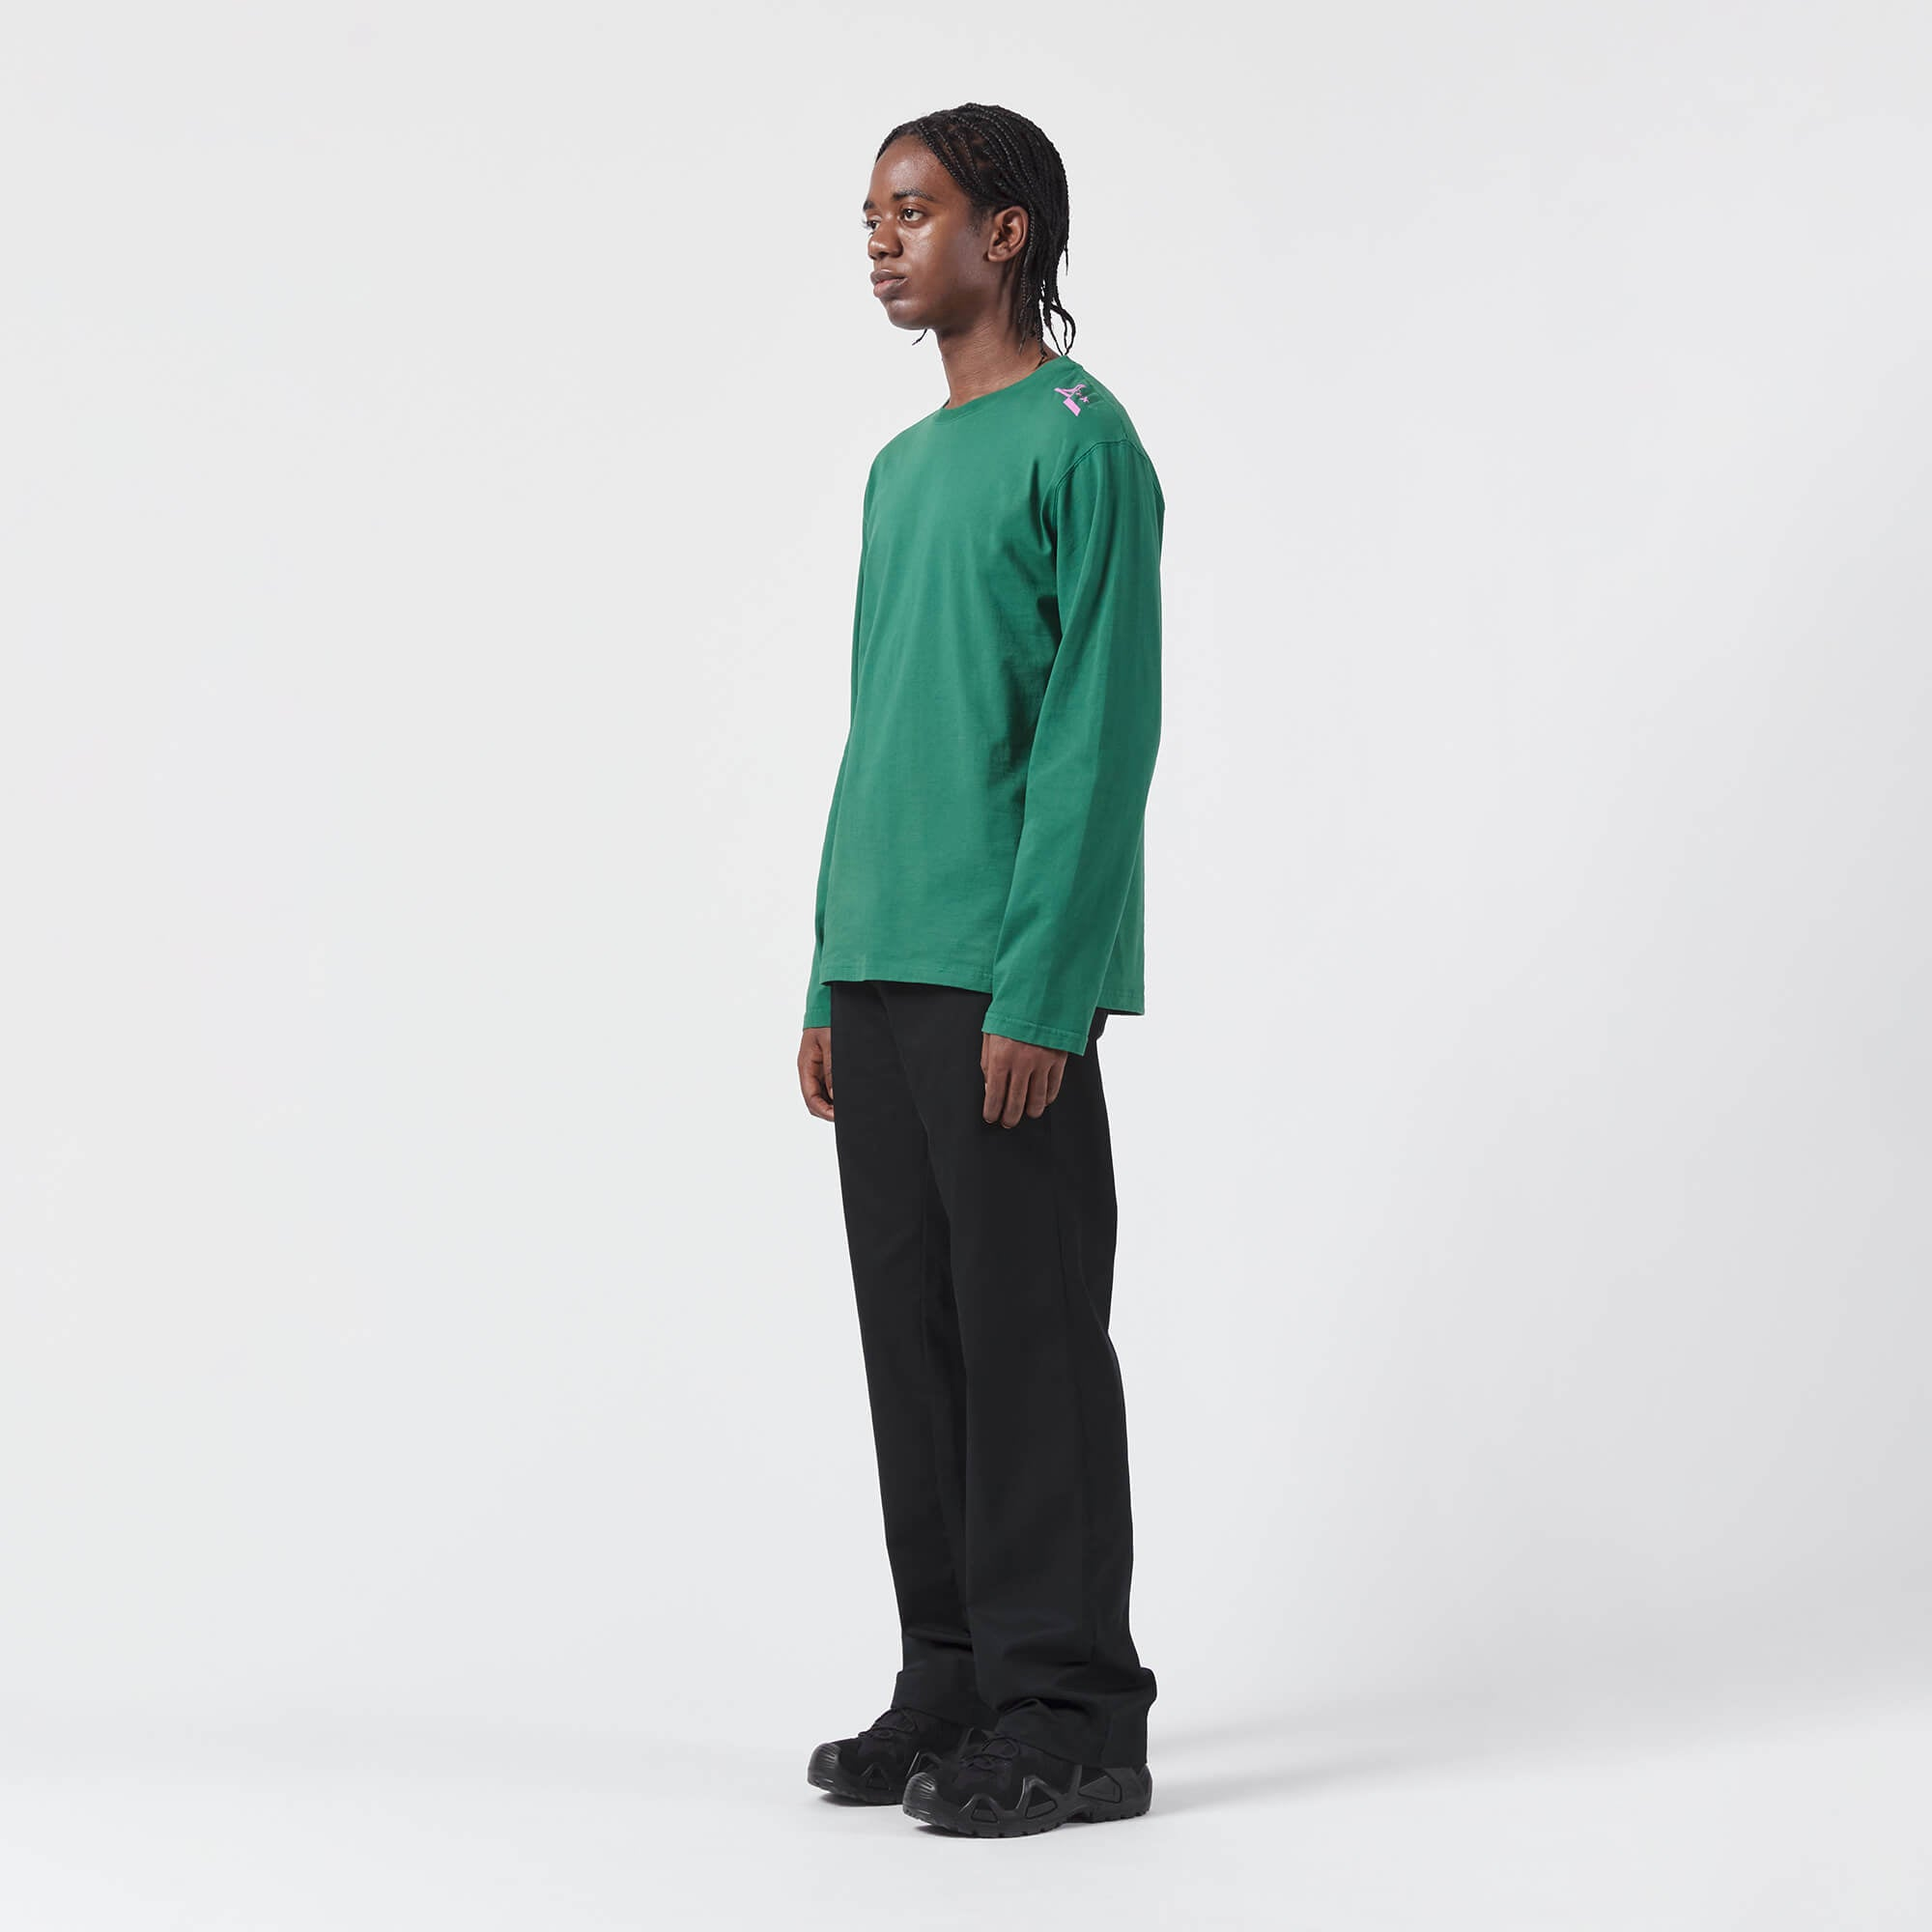 AFFIX WORKS AFFXWRKS FOLEY SEQUENCE LONGSLEEVE T-SHIRT GREEN